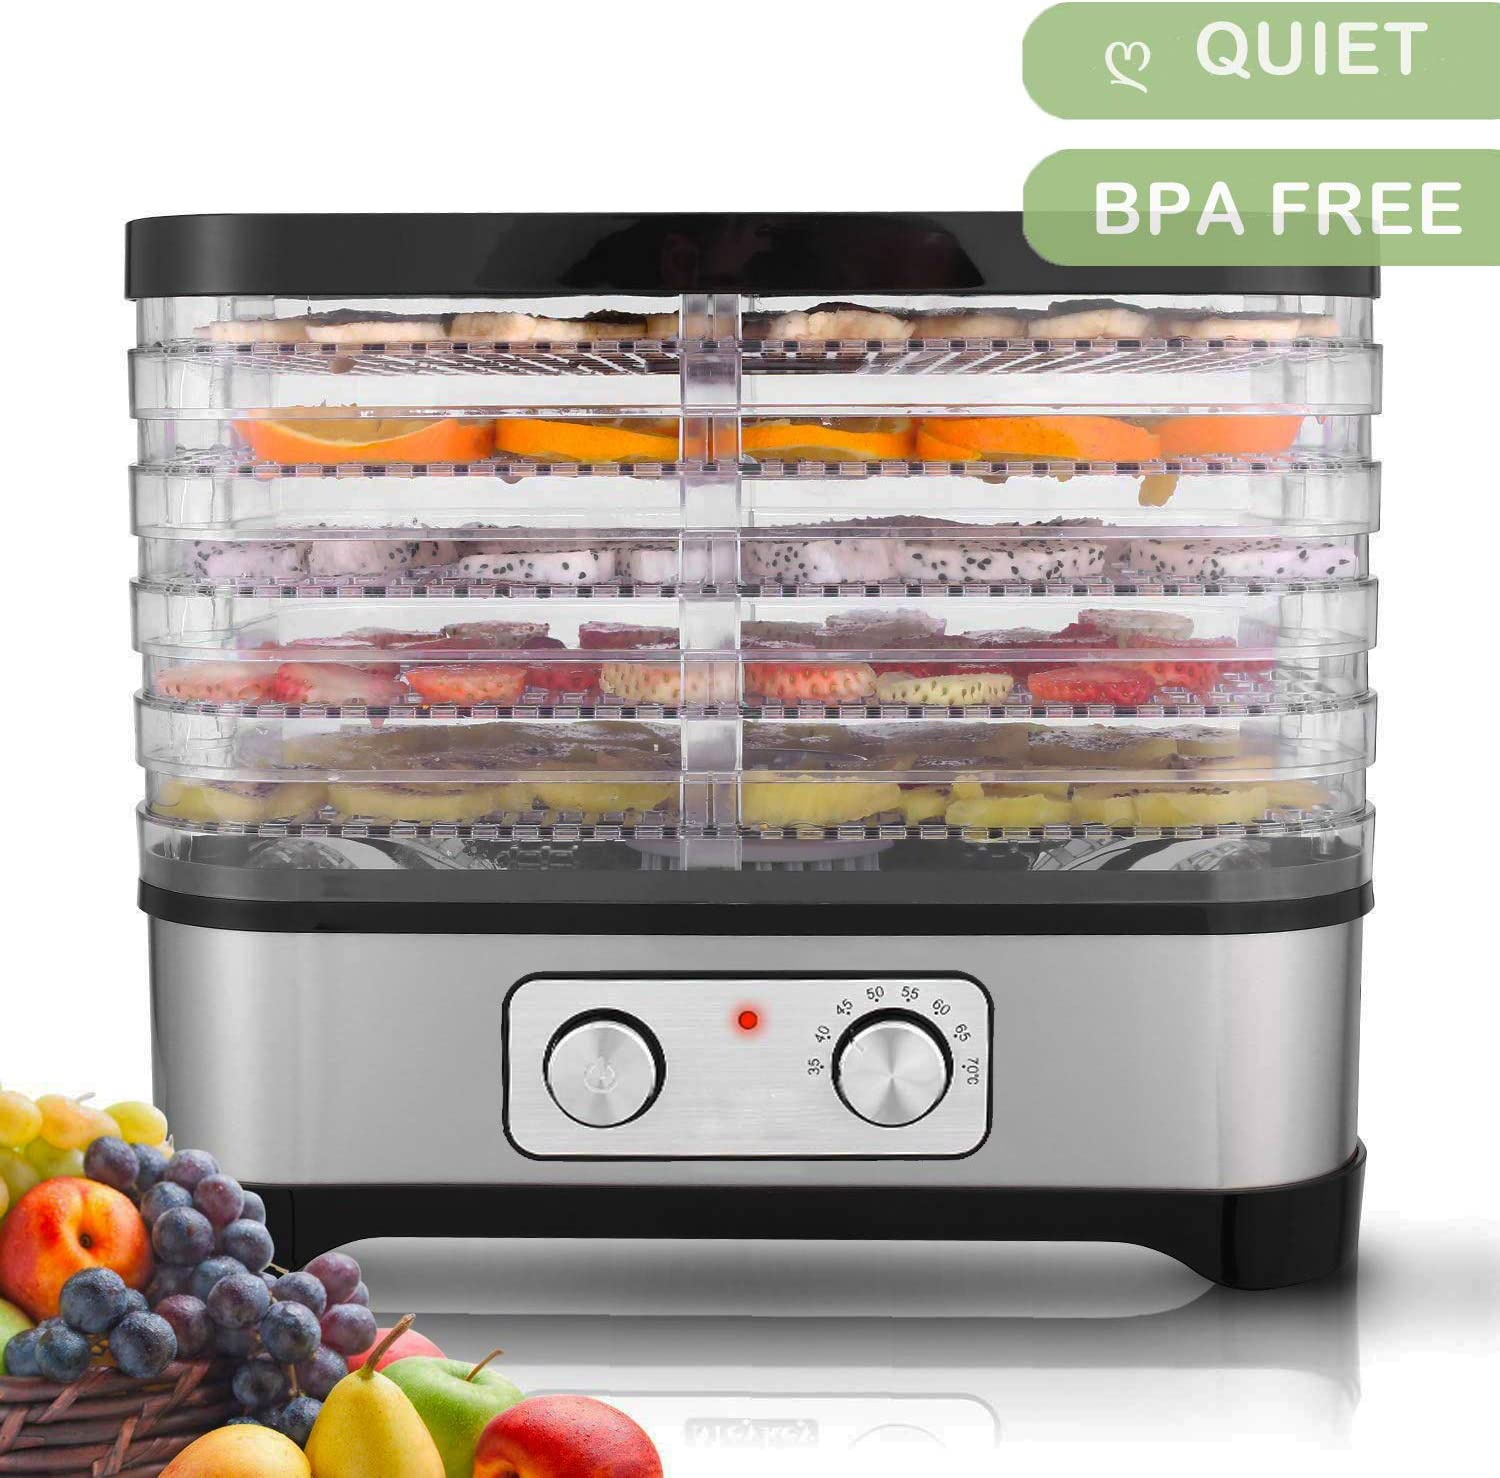 Hosmat Food Dehydrator Machine – Professional Electric Multi-Tier Food Preserver, Meat or Beef Jerky Maker, Fruit Vegetable Dryer with 5 Stackable Trays, Temperature Control Black